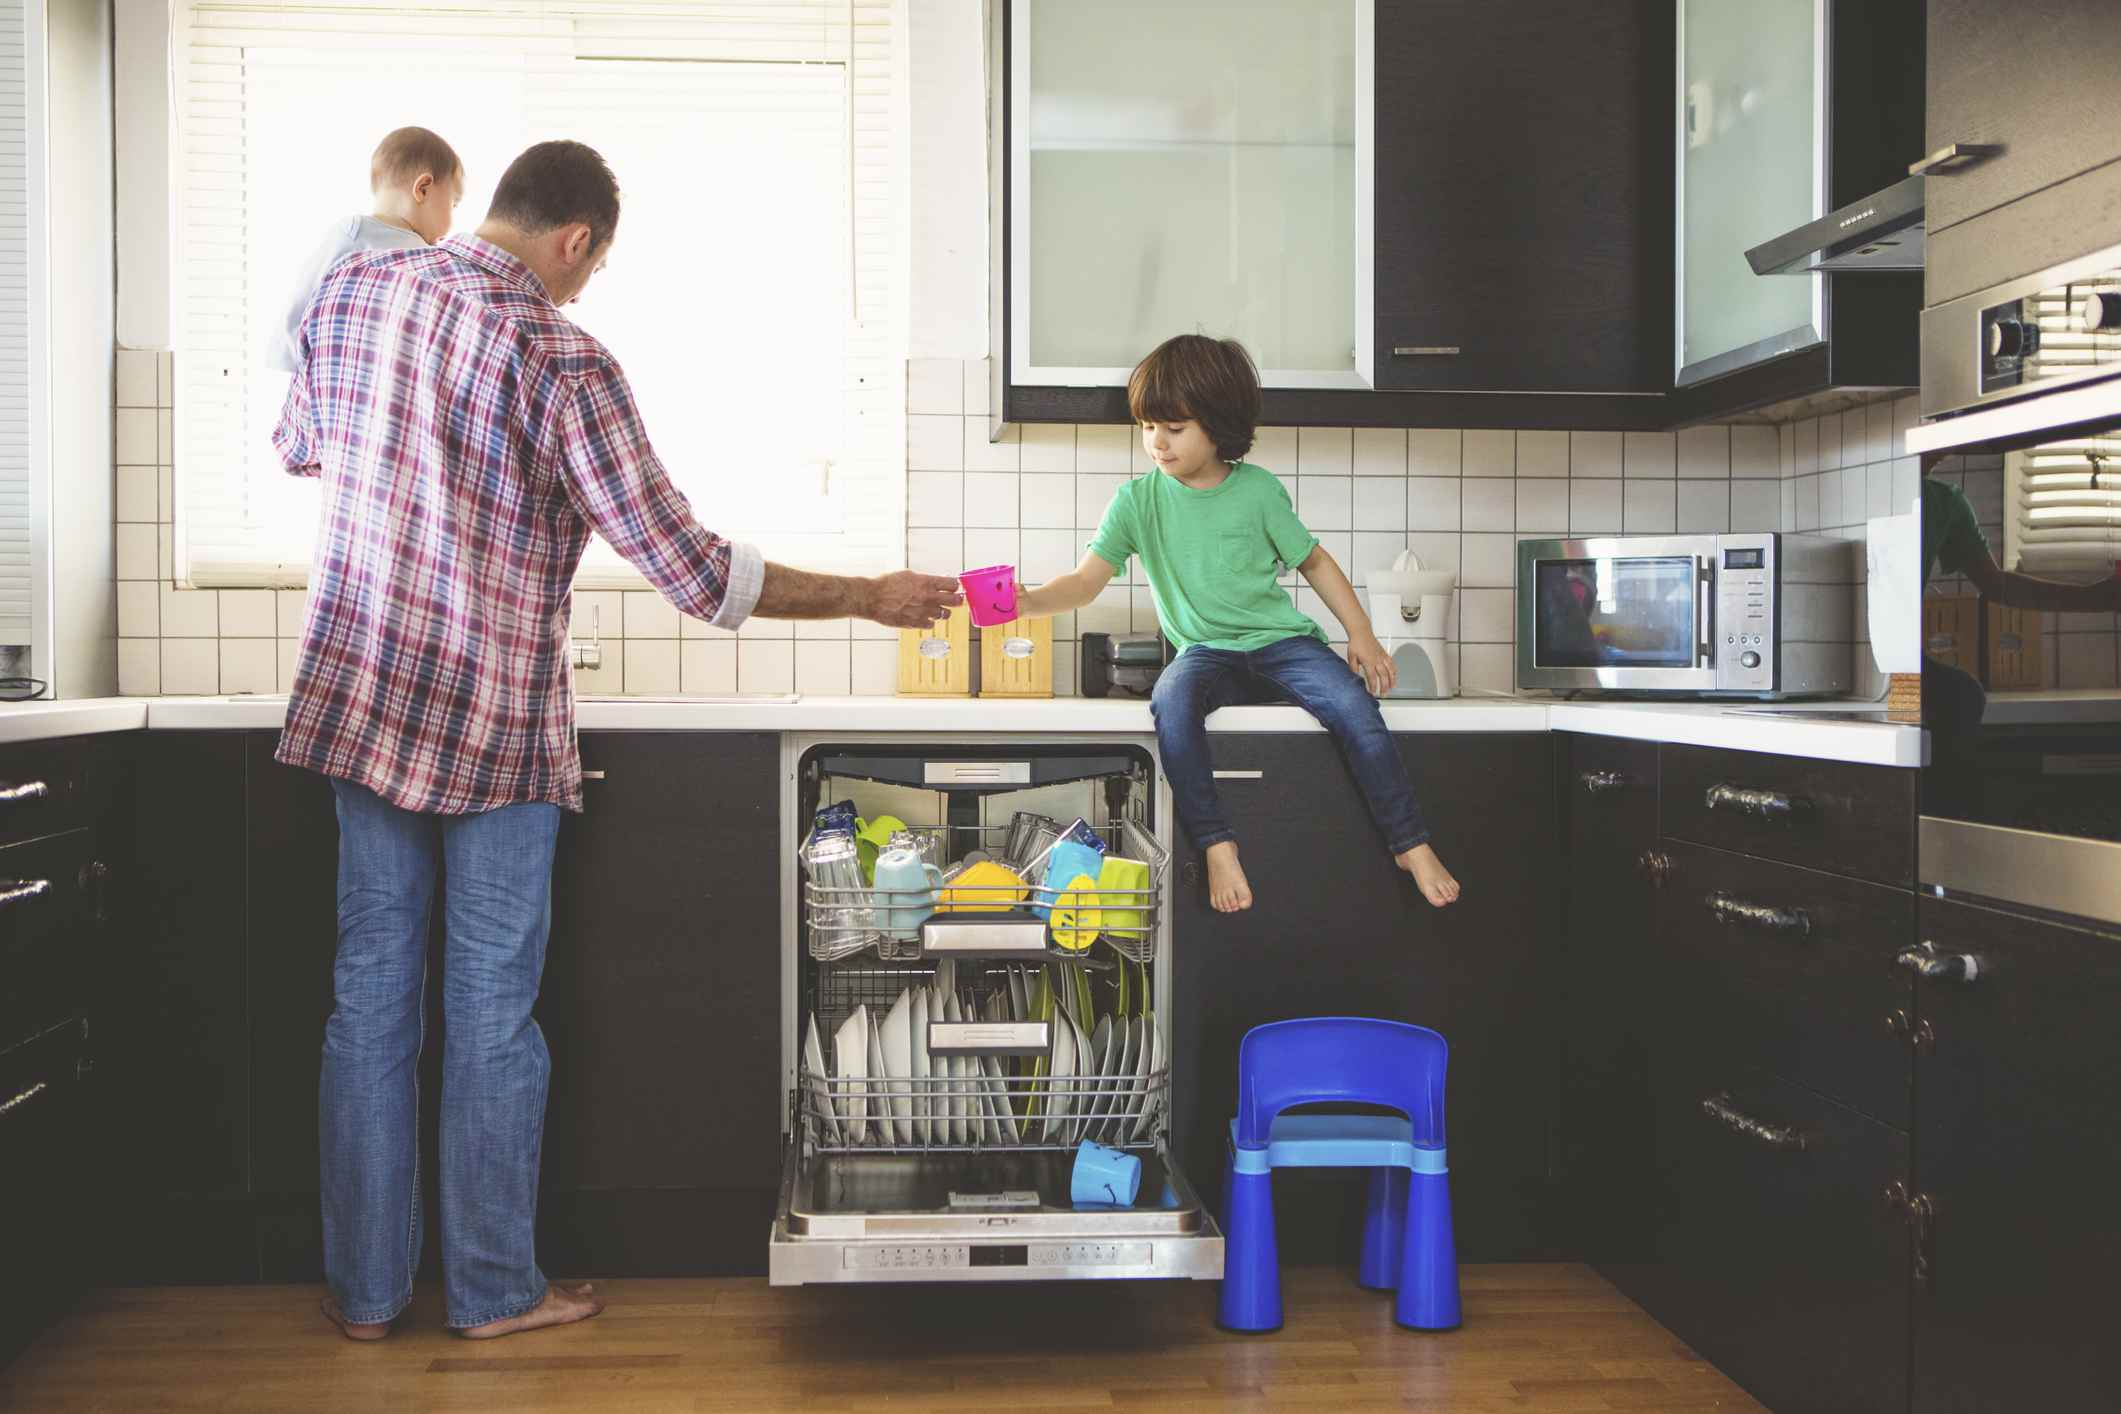 Father and son loading dishwasher